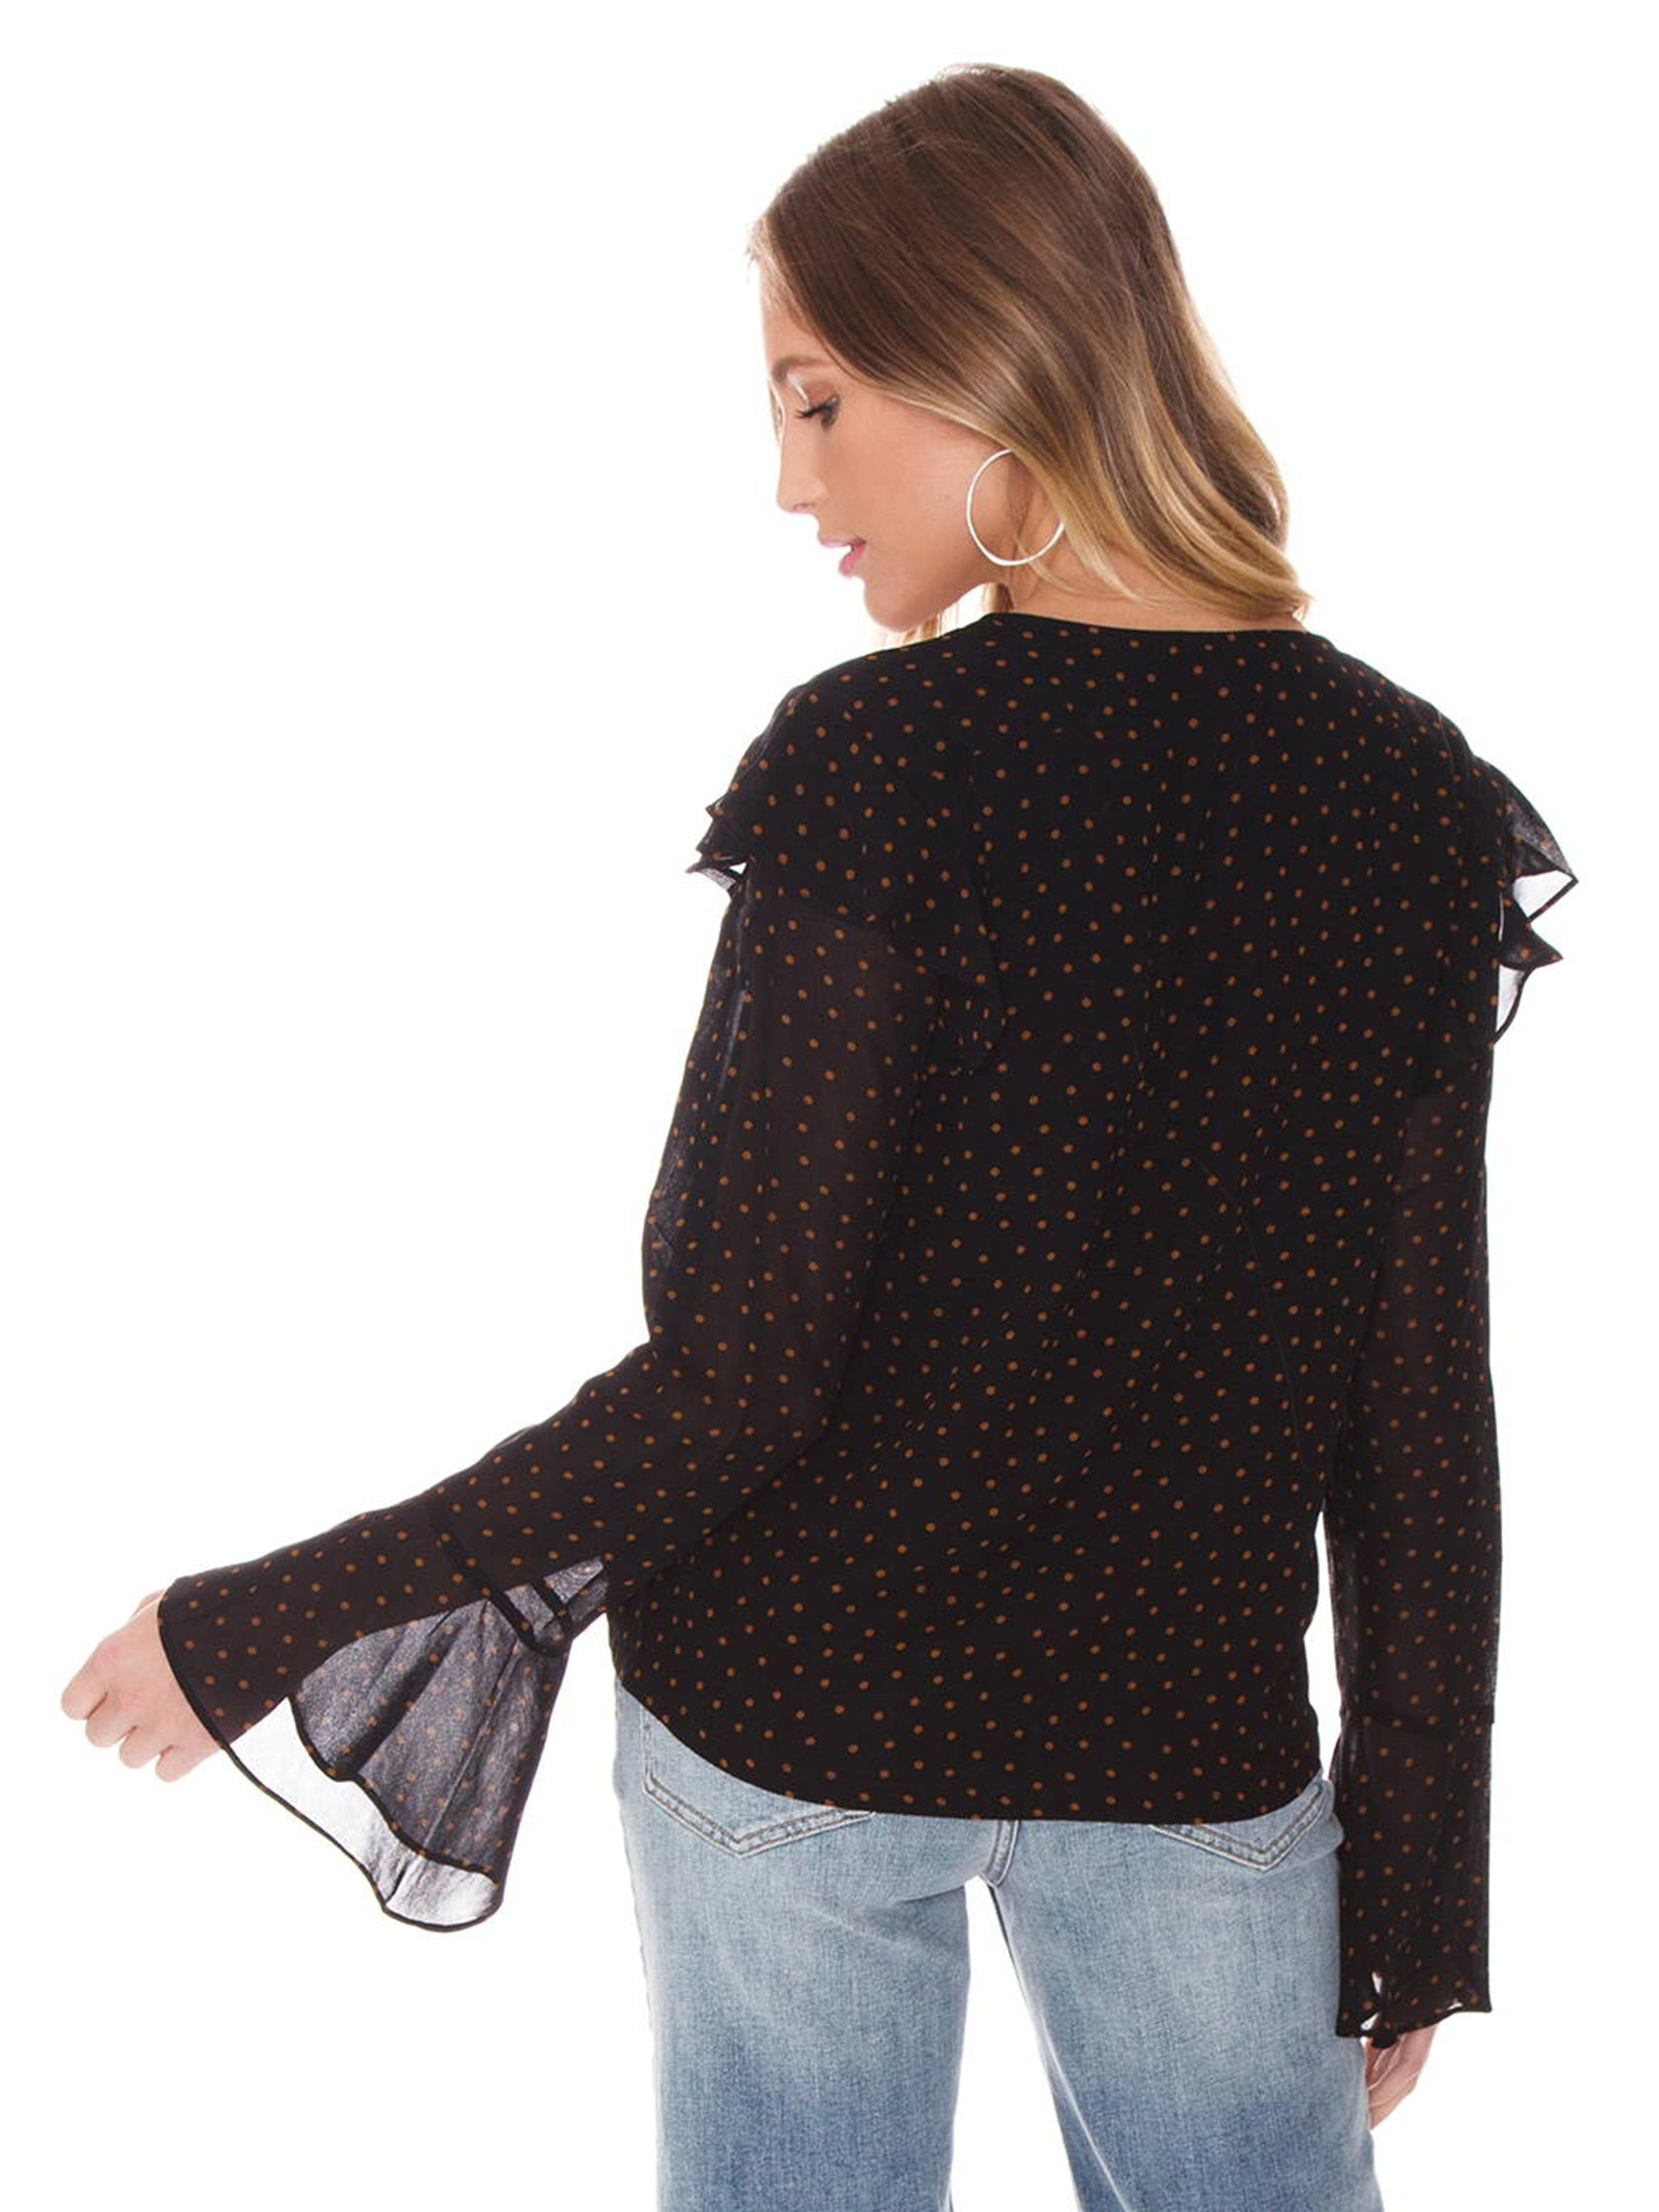 227fe213a86c7f Women outfit in a top rental from SANCTUARY called Cori Ruffle Wrap Blouse